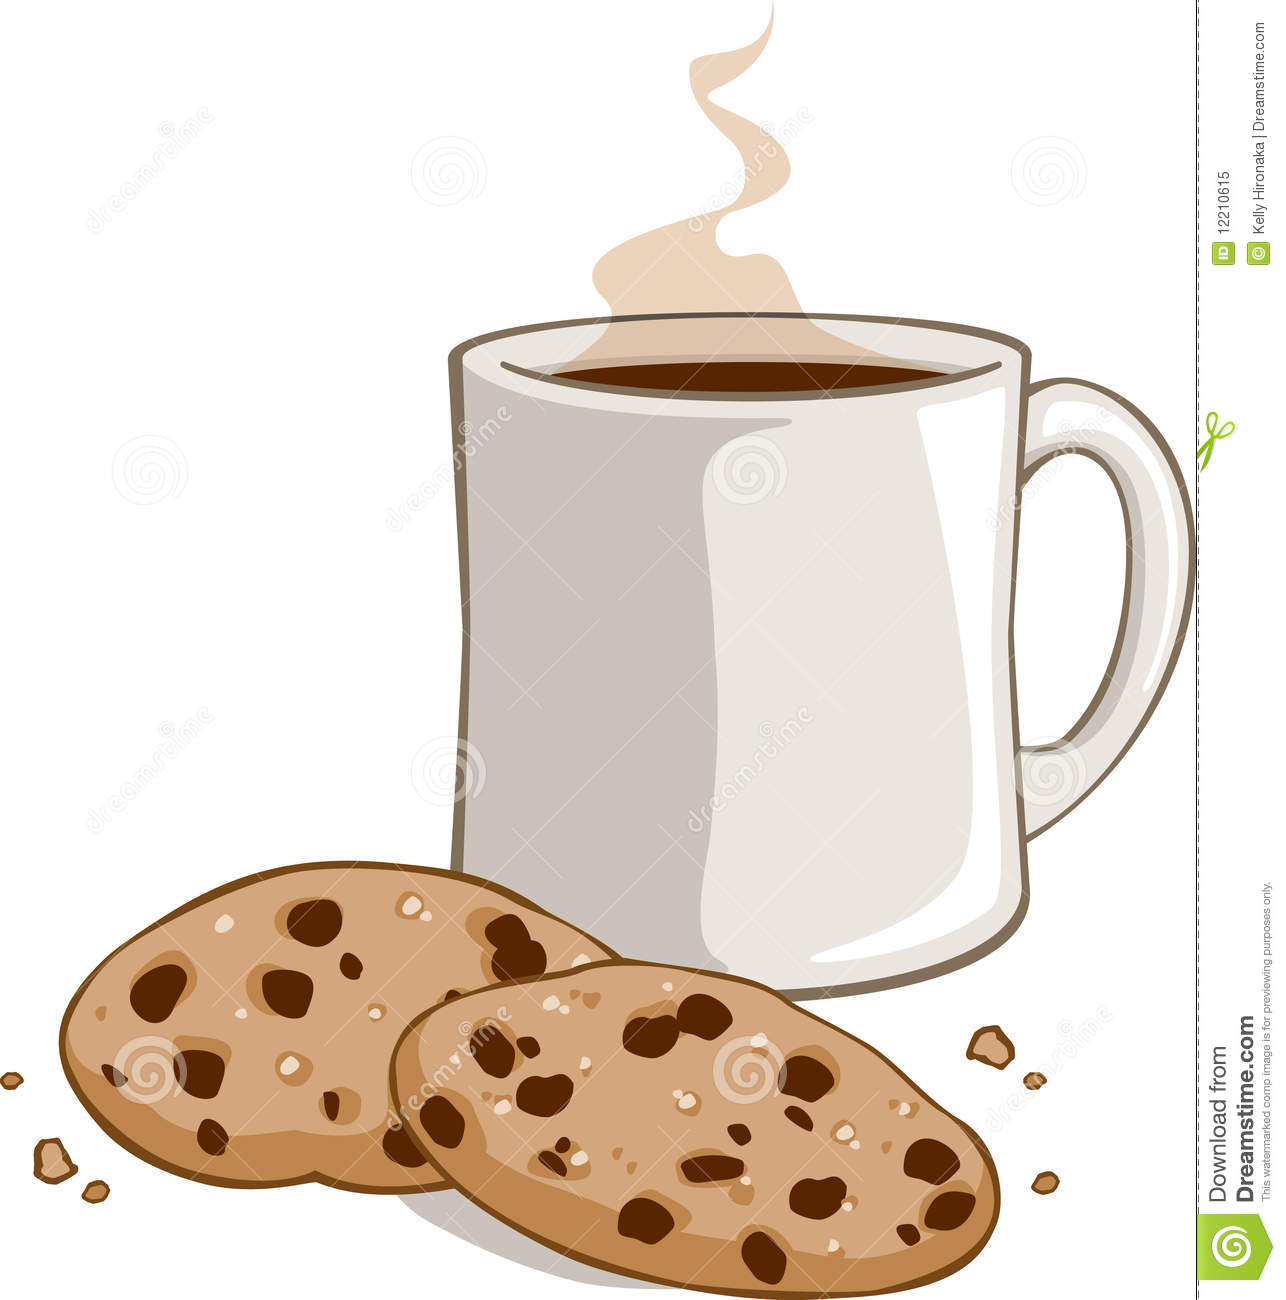 Hot Chocolate clipart cookie #10